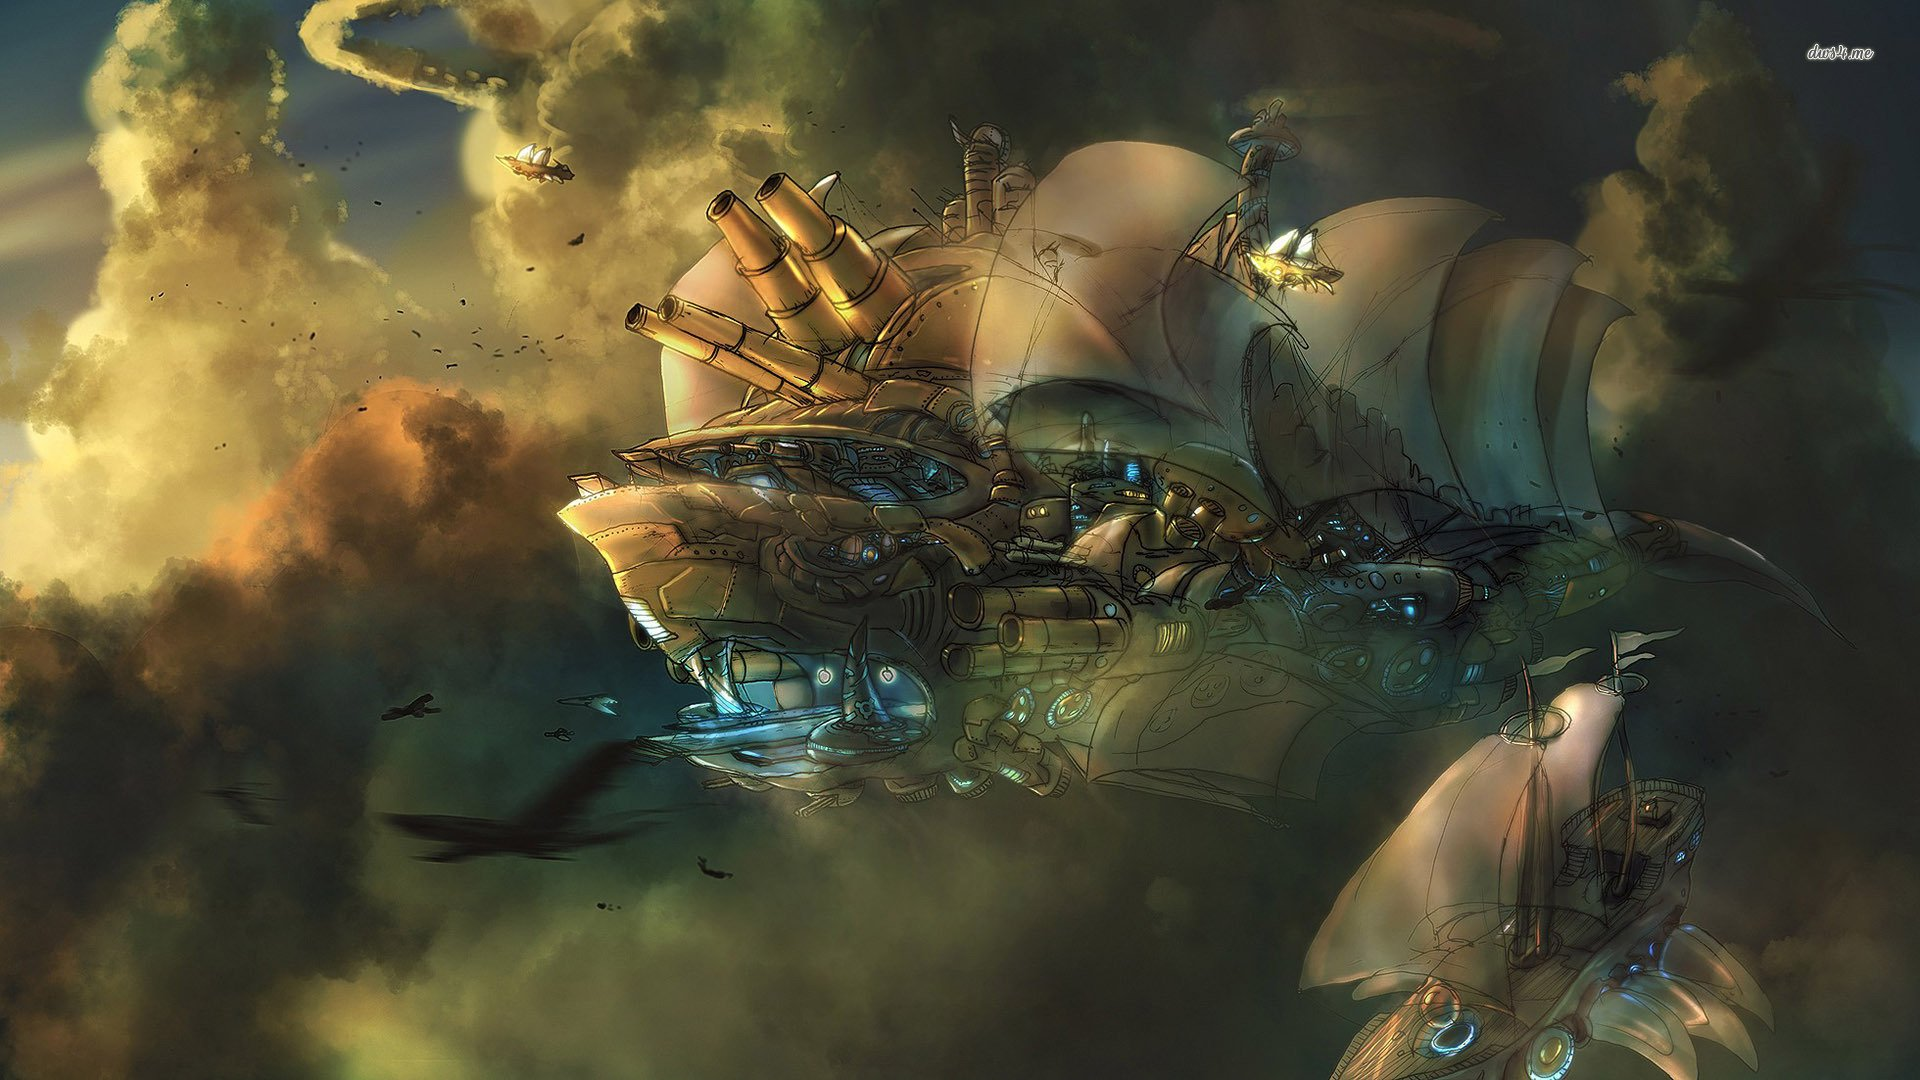 331 Steampunk Hd Wallpapers Background Images Wallpaper Abyss